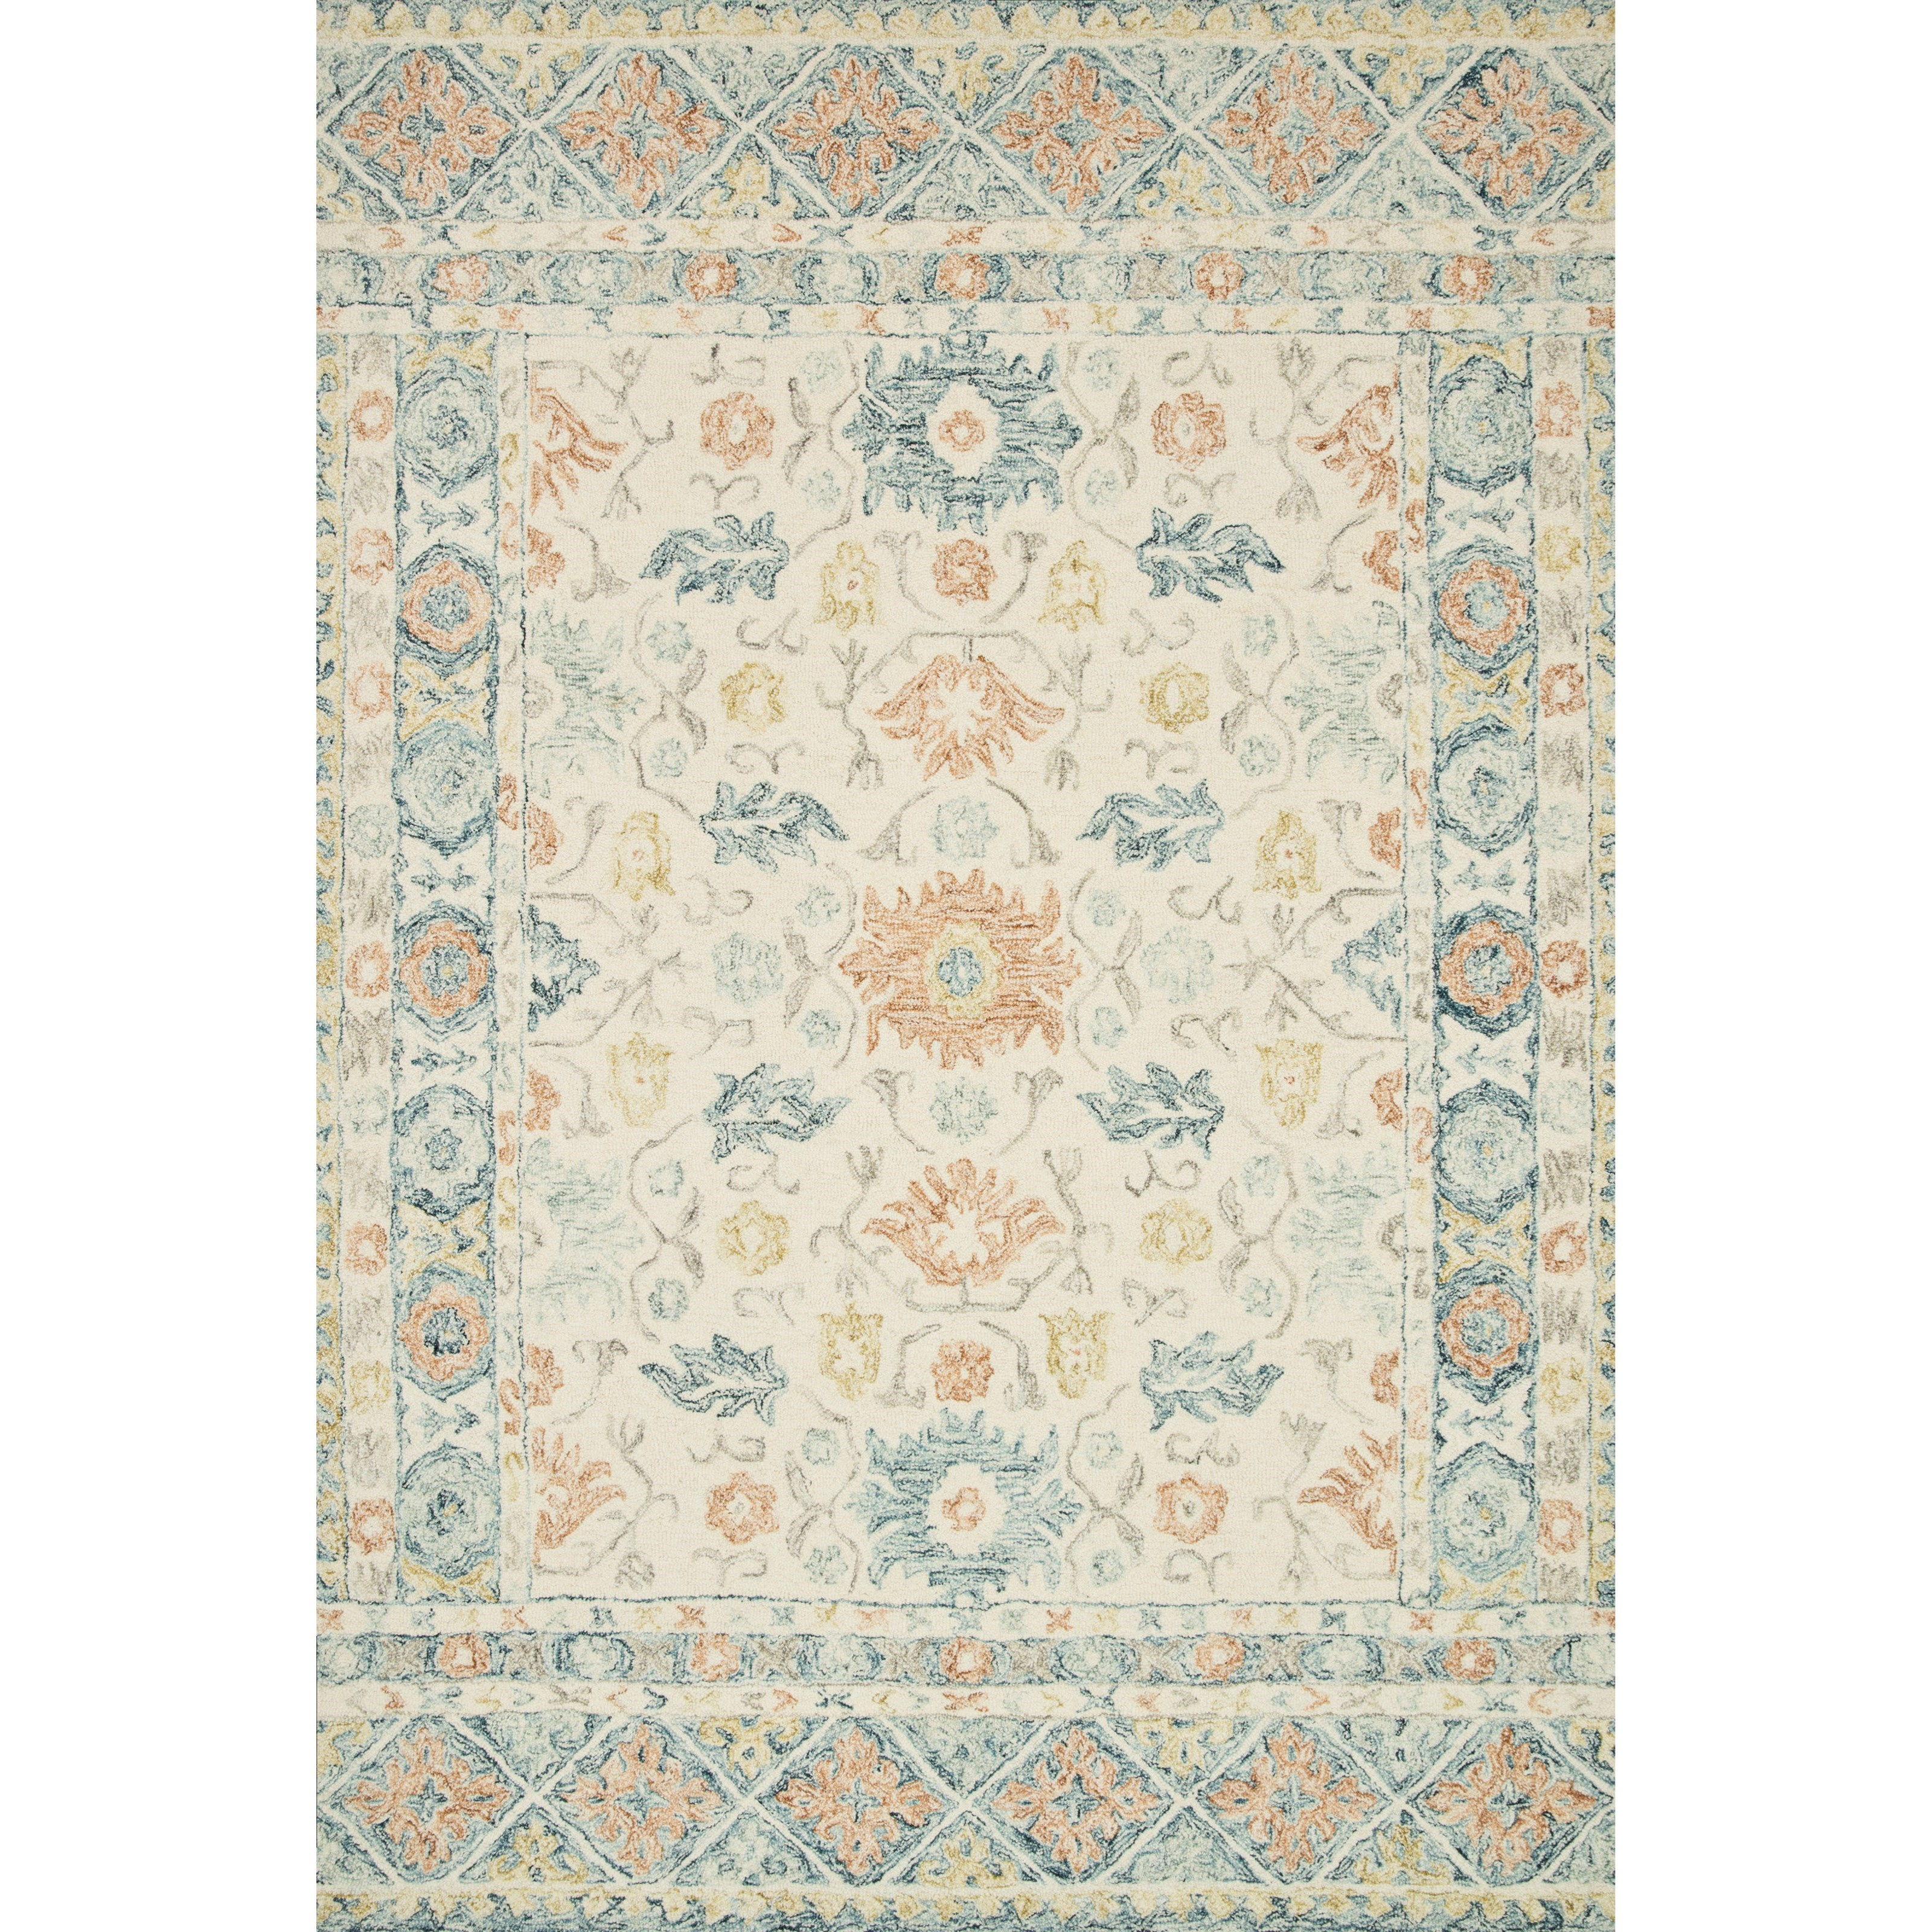 """Norabel 5'0"""" x 7'6"""" Ivory / Multi Rug by Loloi Rugs at Virginia Furniture Market"""